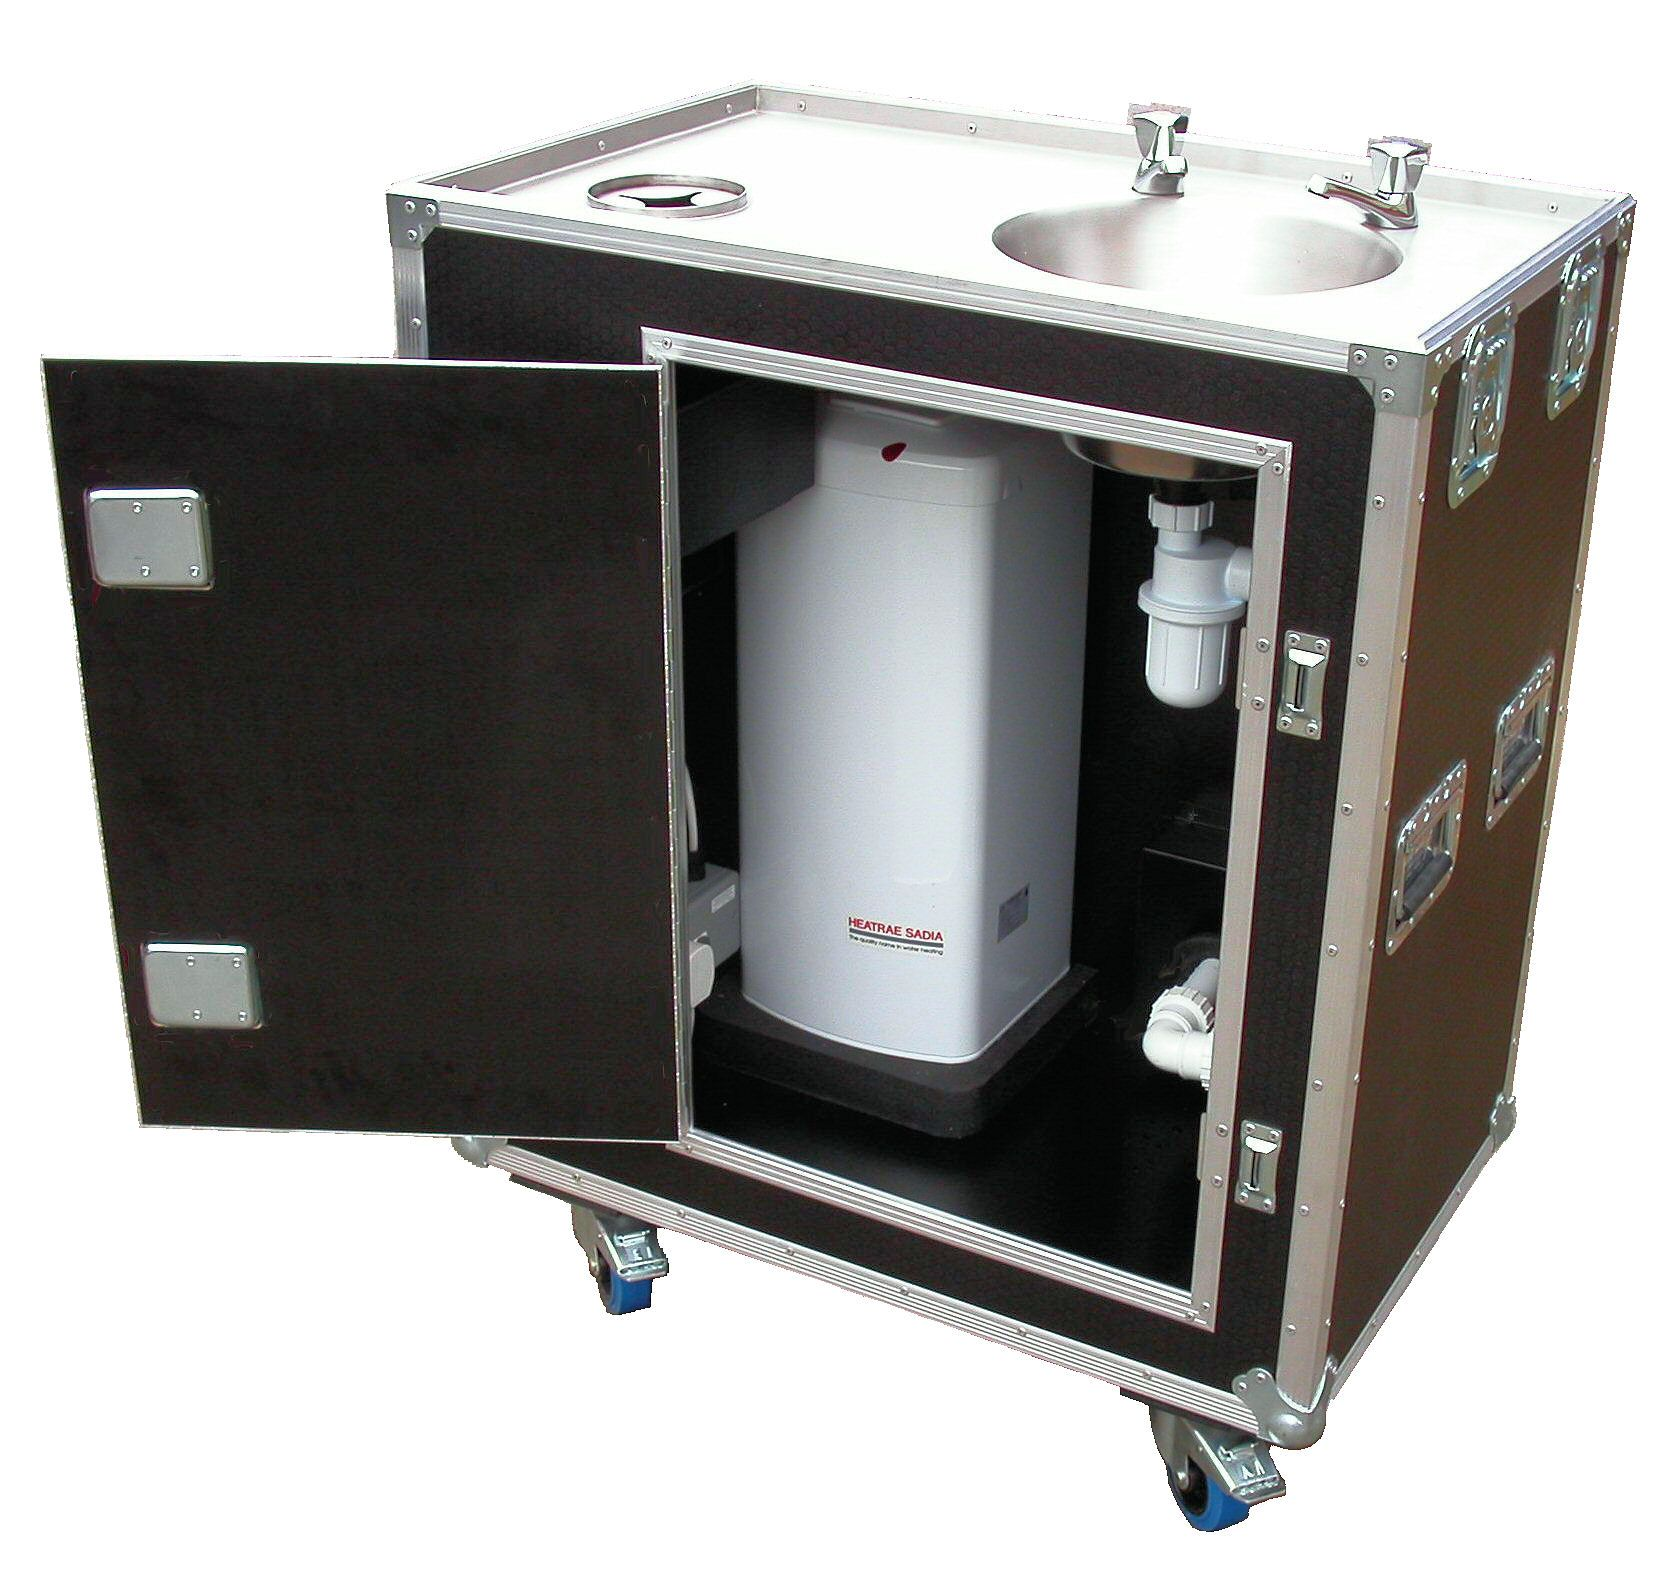 Transporte Muebles Catering Flight Cases Pesquisa Google Portable Kitchen